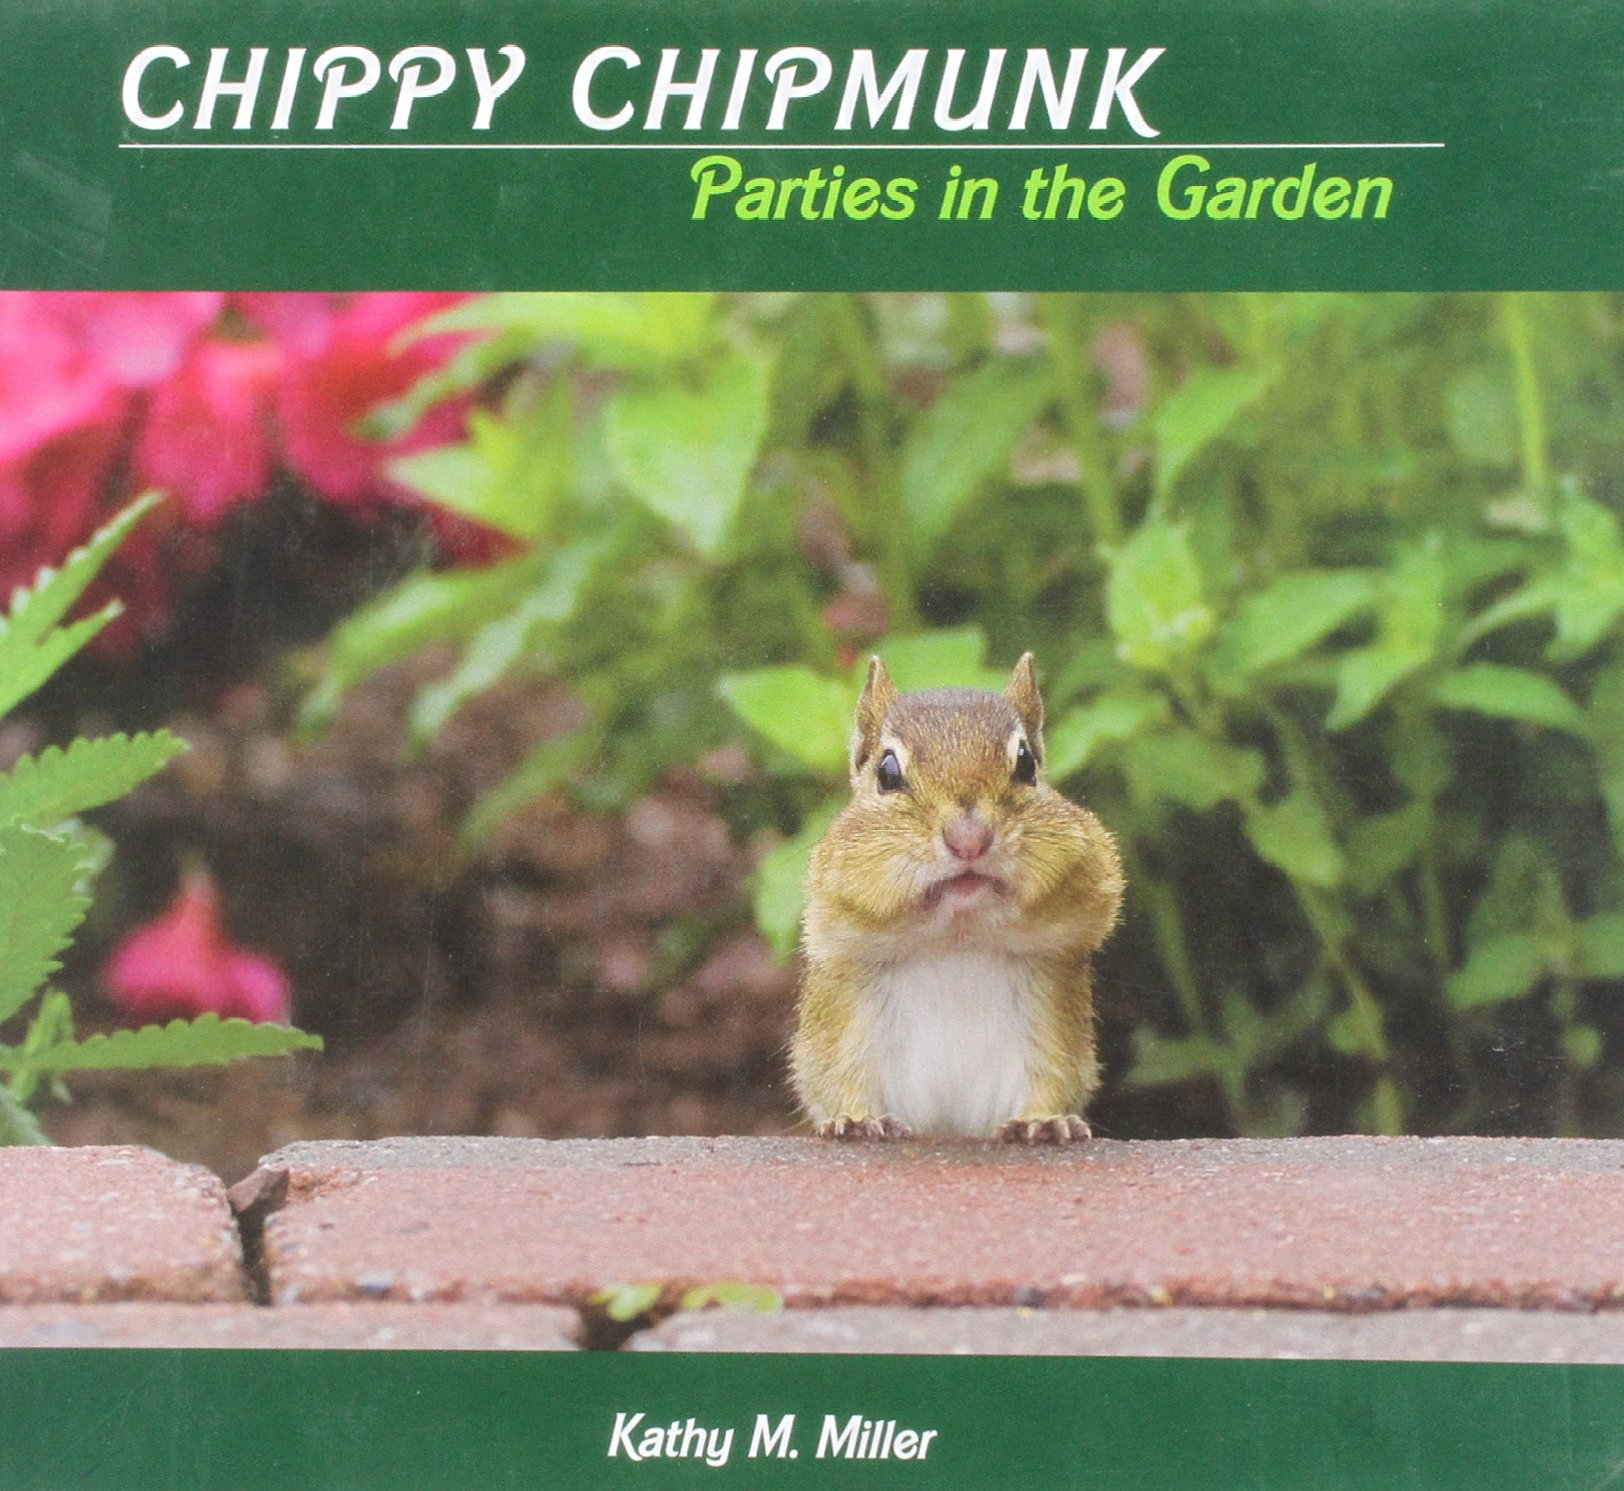 com chippy chipmunk parties in the garden 9780984089307  com chippy chipmunk parties in the garden 9780984089307 kathy m miller books